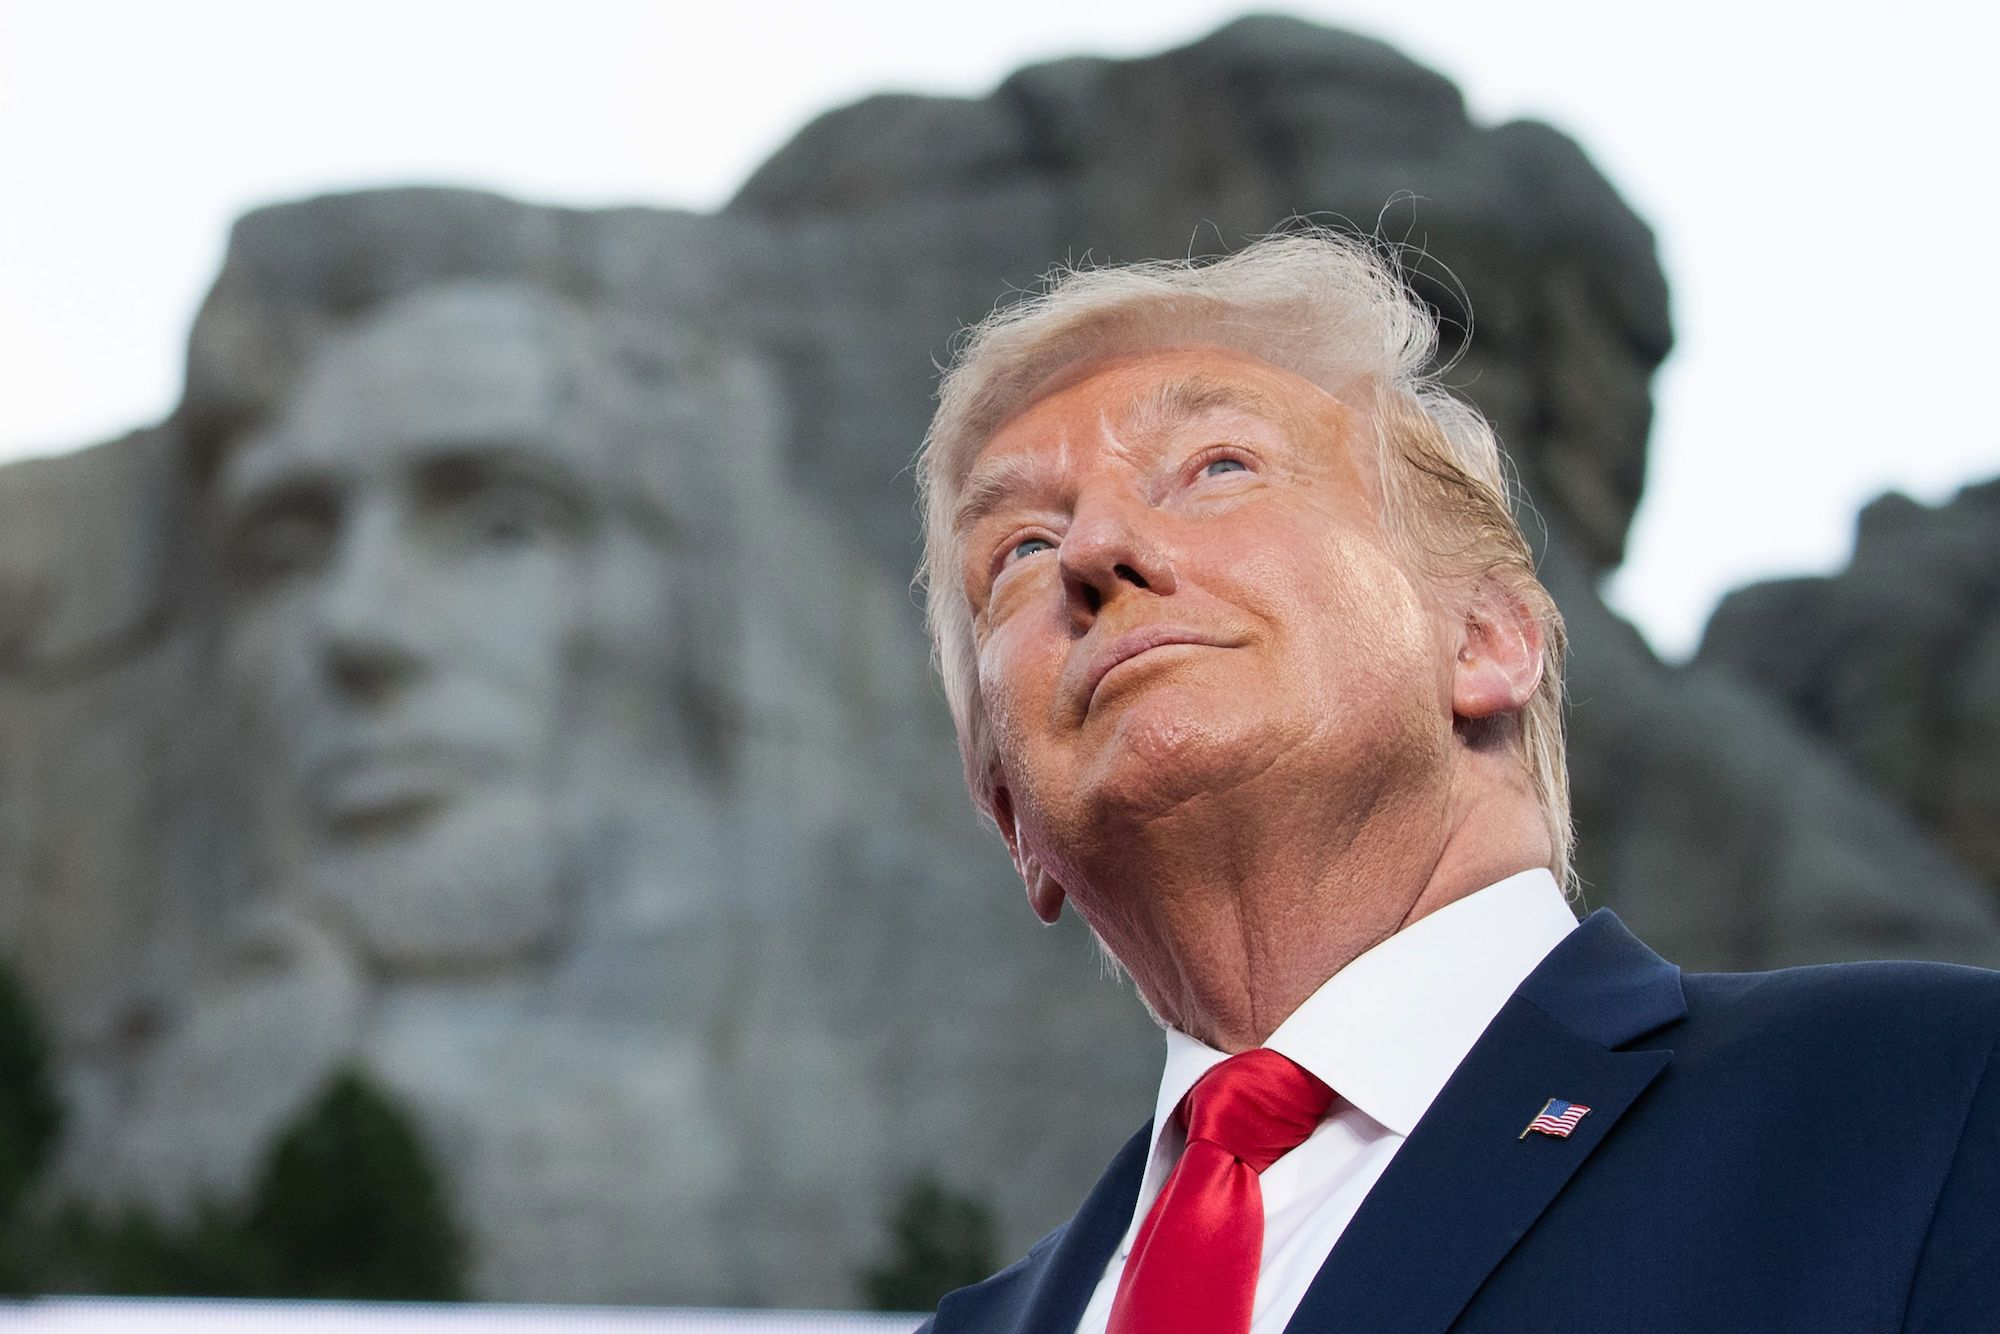 White House Asked if Trump Could Be Added to Mount Rushmore